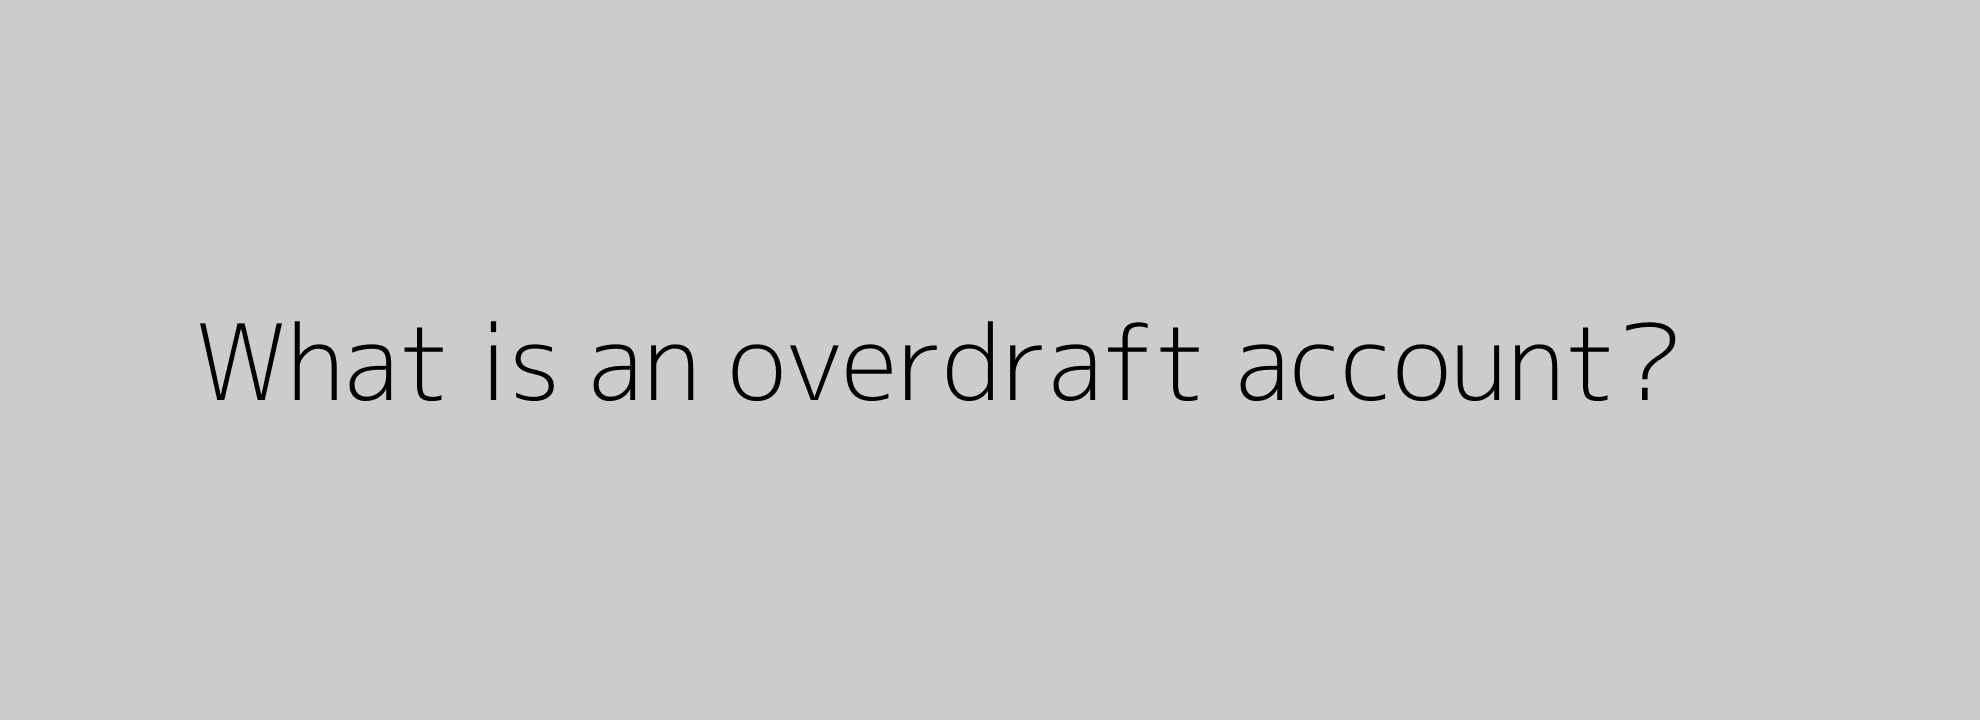 What is an overdraft account?